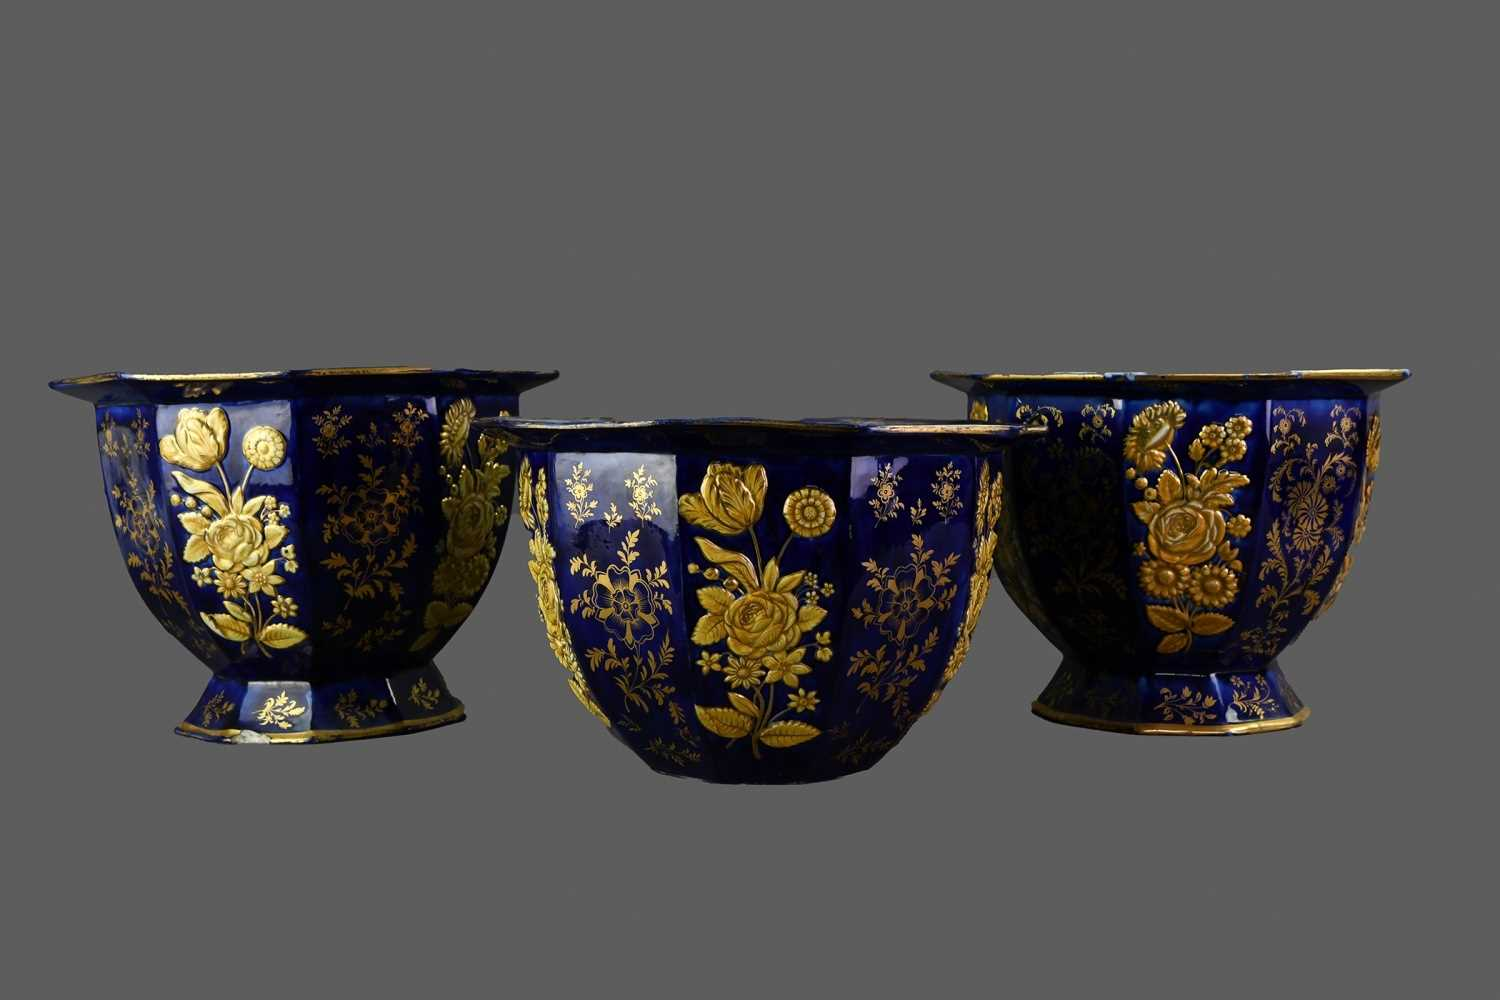 Lot 89 - AN EARLY 20TH CENTURY GARNITURE OF THREE STONEWARE PLANTERS